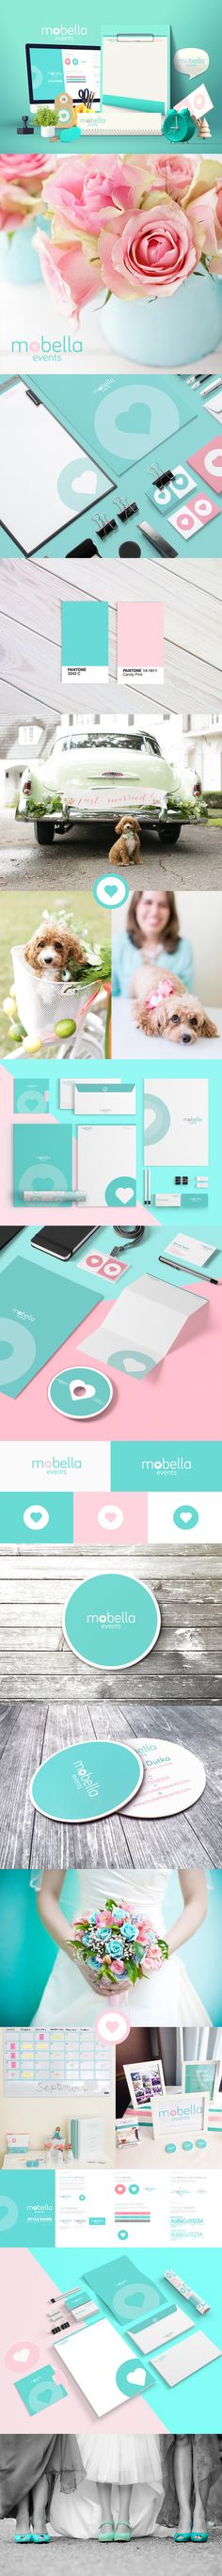 Mobella events - A branding identity for Mobella events a wedding event company located in Orlando USA.  They are designers & planners seeking to inspire the heart, celebrate our blessings and help strengthen the foundations of marriage and family.  #wedding #planner #mobella #orlandowedding #truelove #dog #love #heart #tiffanyblue #pink #pastel #bells #bridal #identity #brandingguide #pantone